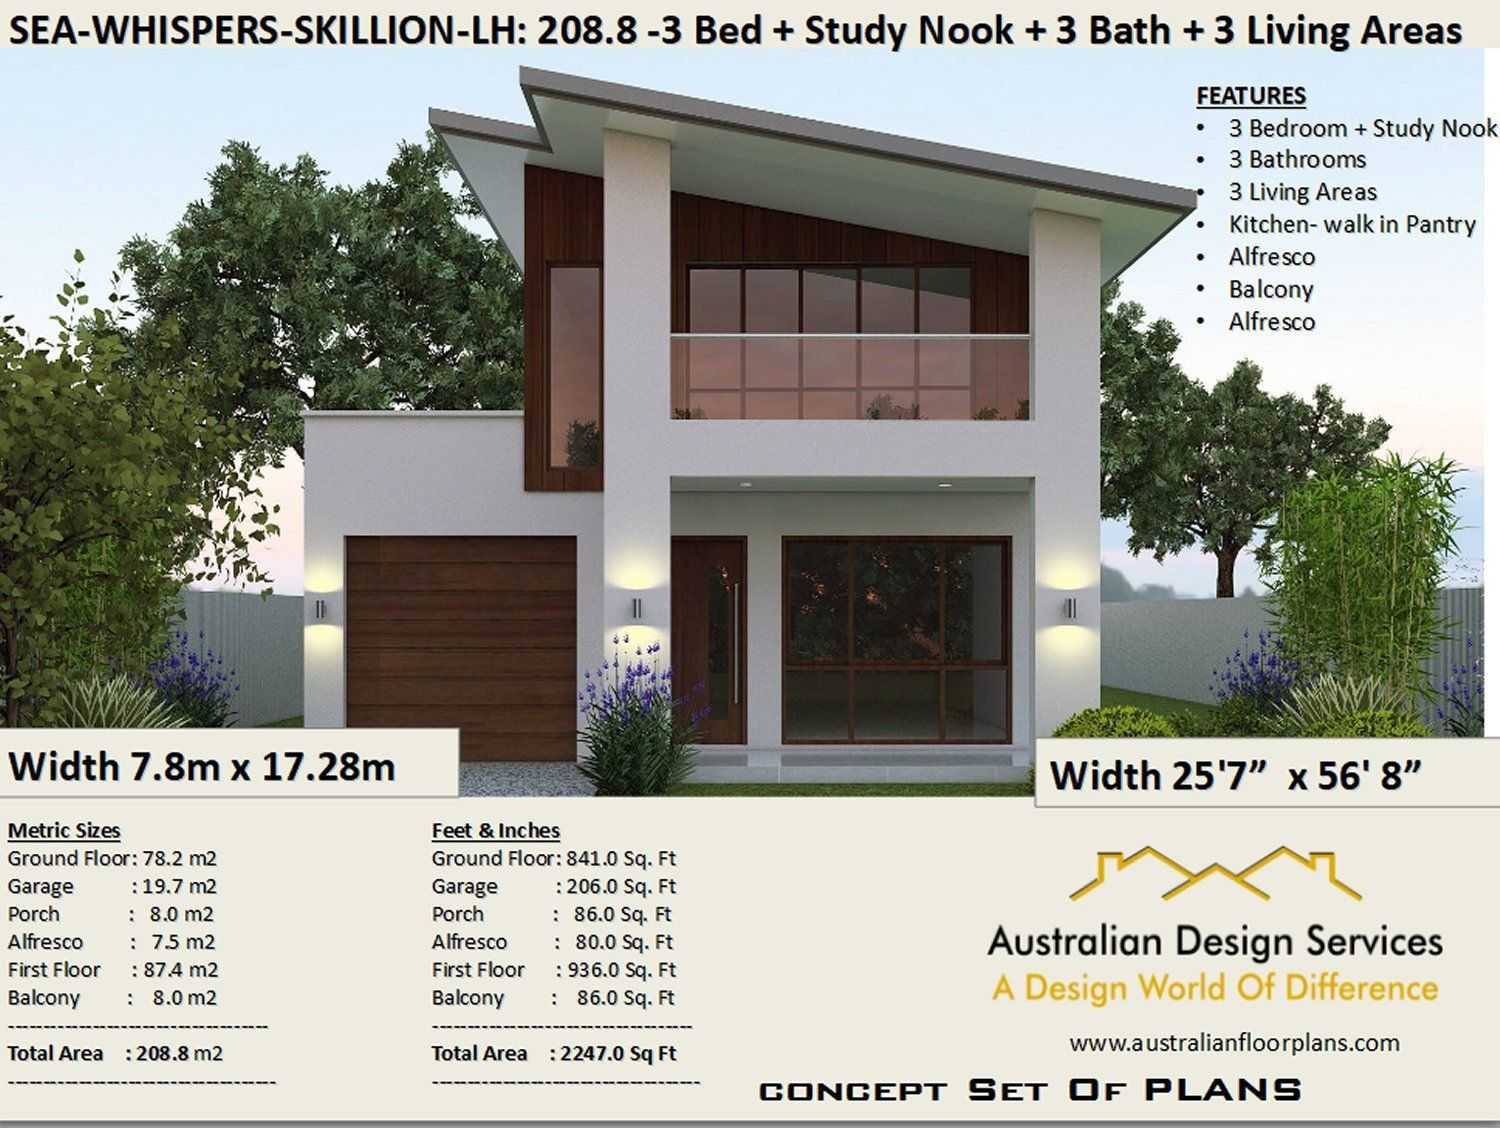 Narrow Skillion Roof House Plans Rh 208 M2 2247 Sq Feet Etsy 2 Storey House Design House Plans 2 Storey Skillion Roof